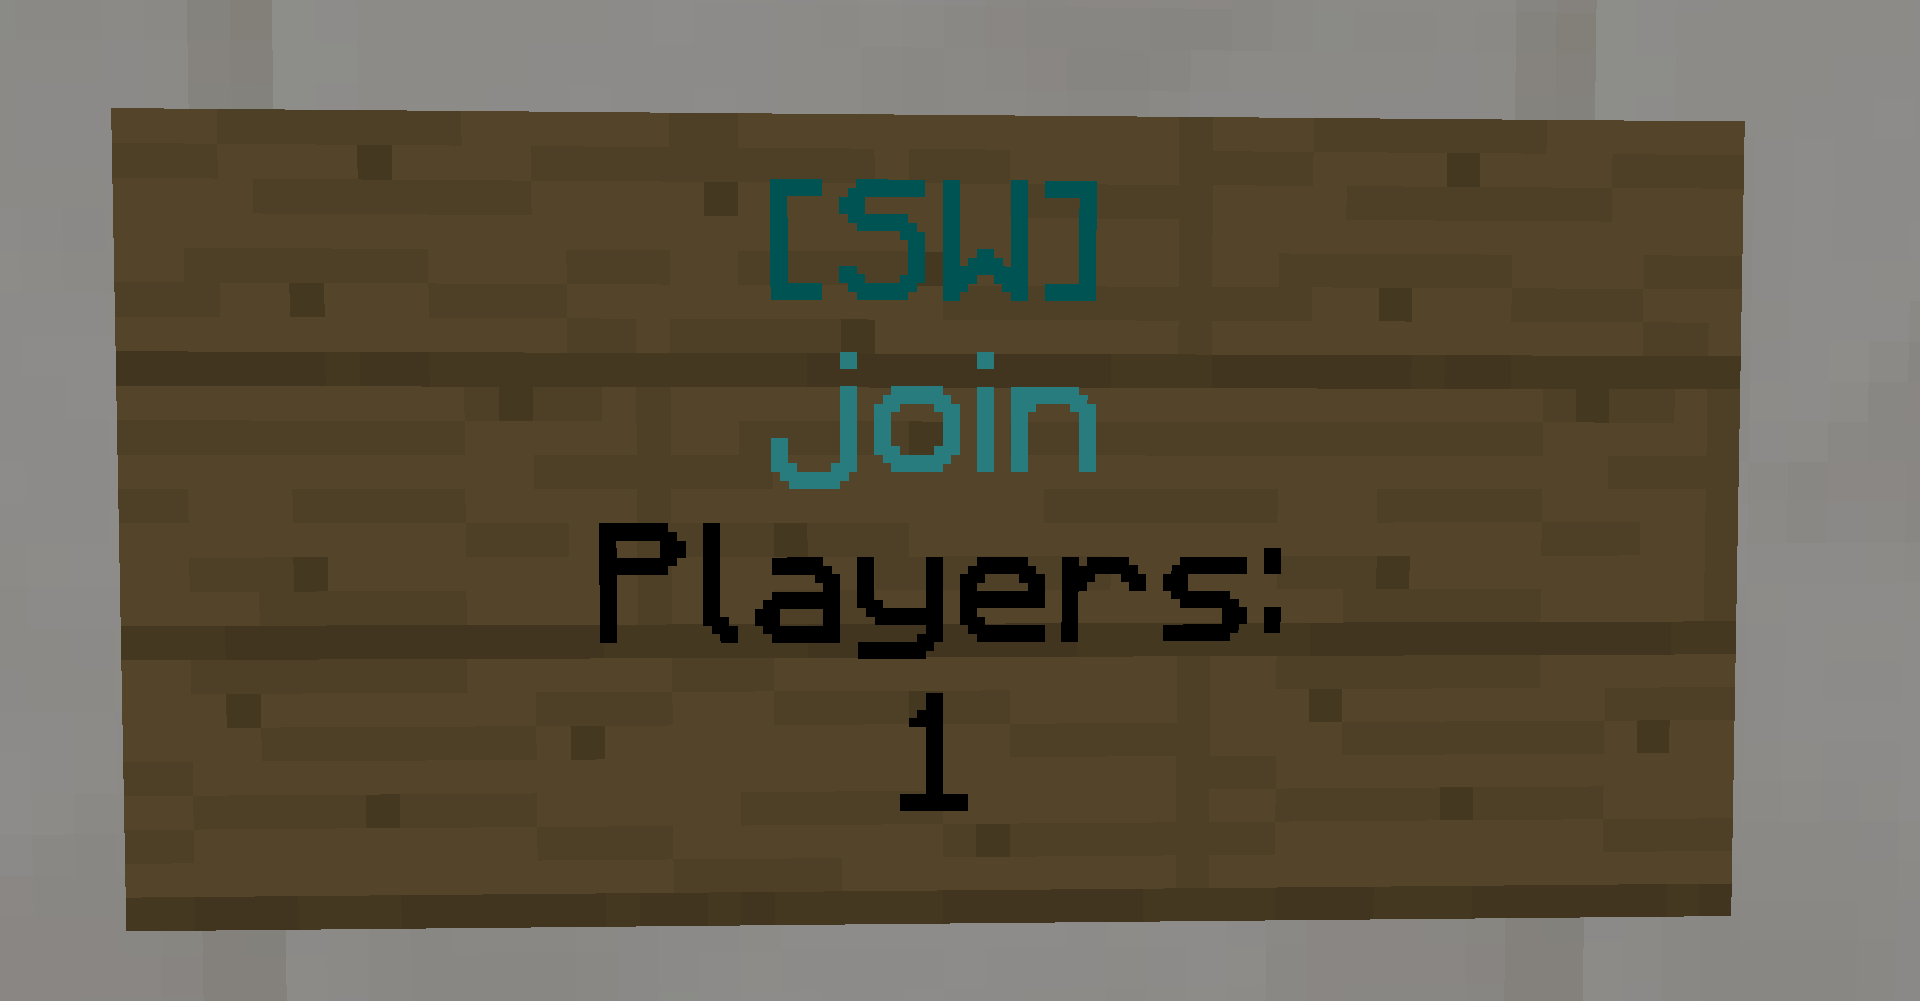 Join a skywars game using signs